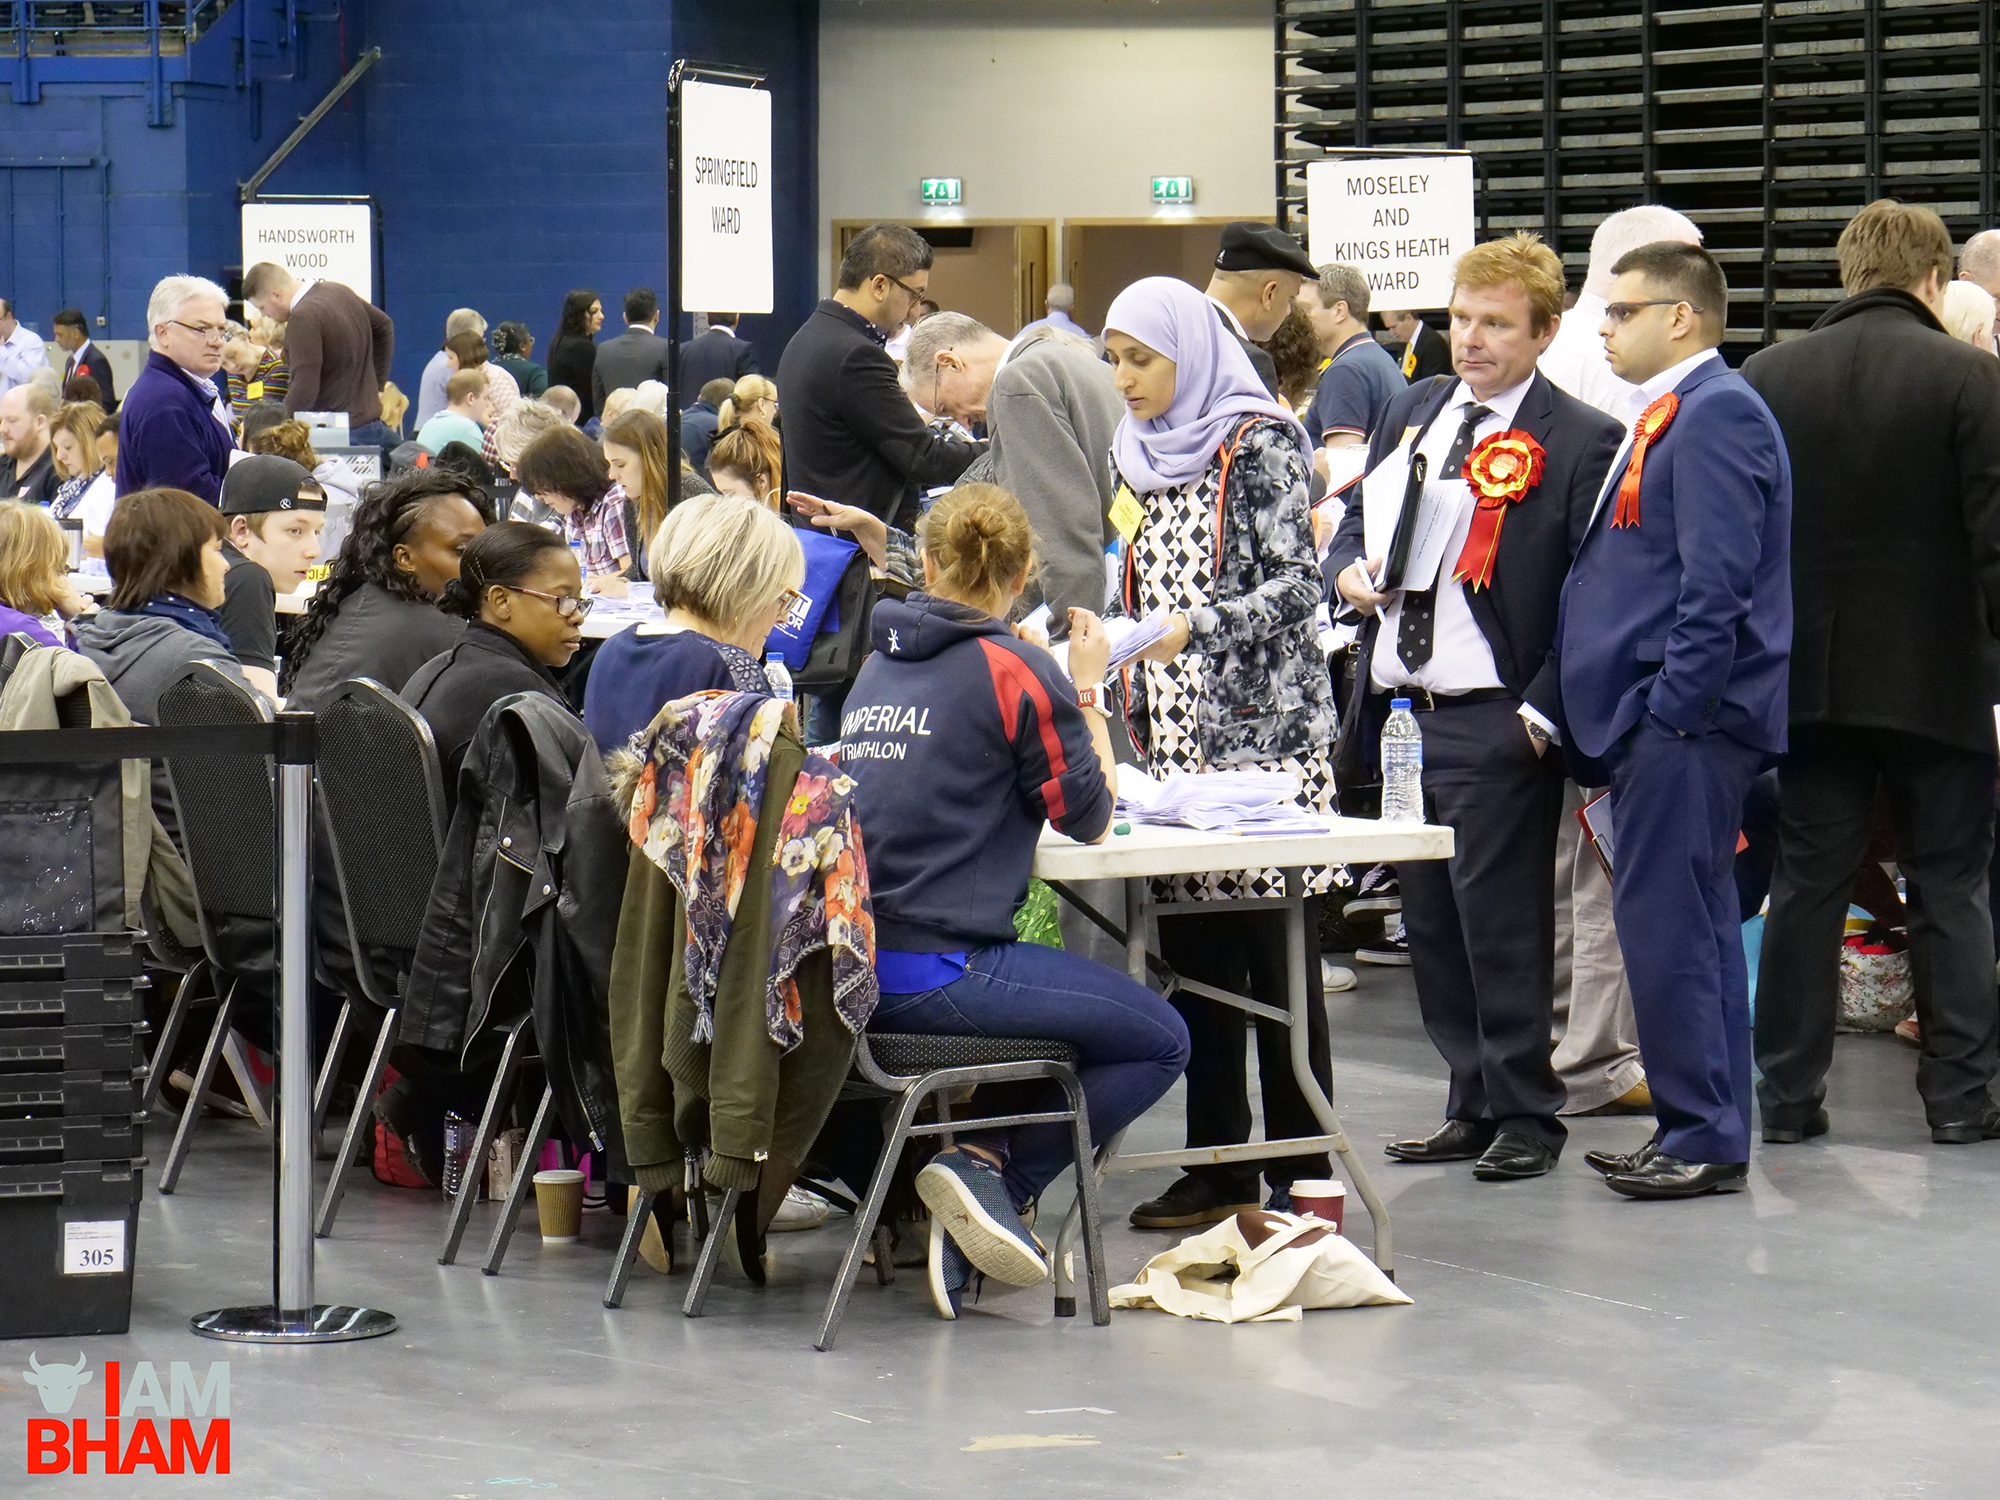 Labour councillors oversee and observe the West Midlands Mayoral Election vote count at the Birmingham Barclaycard Arena